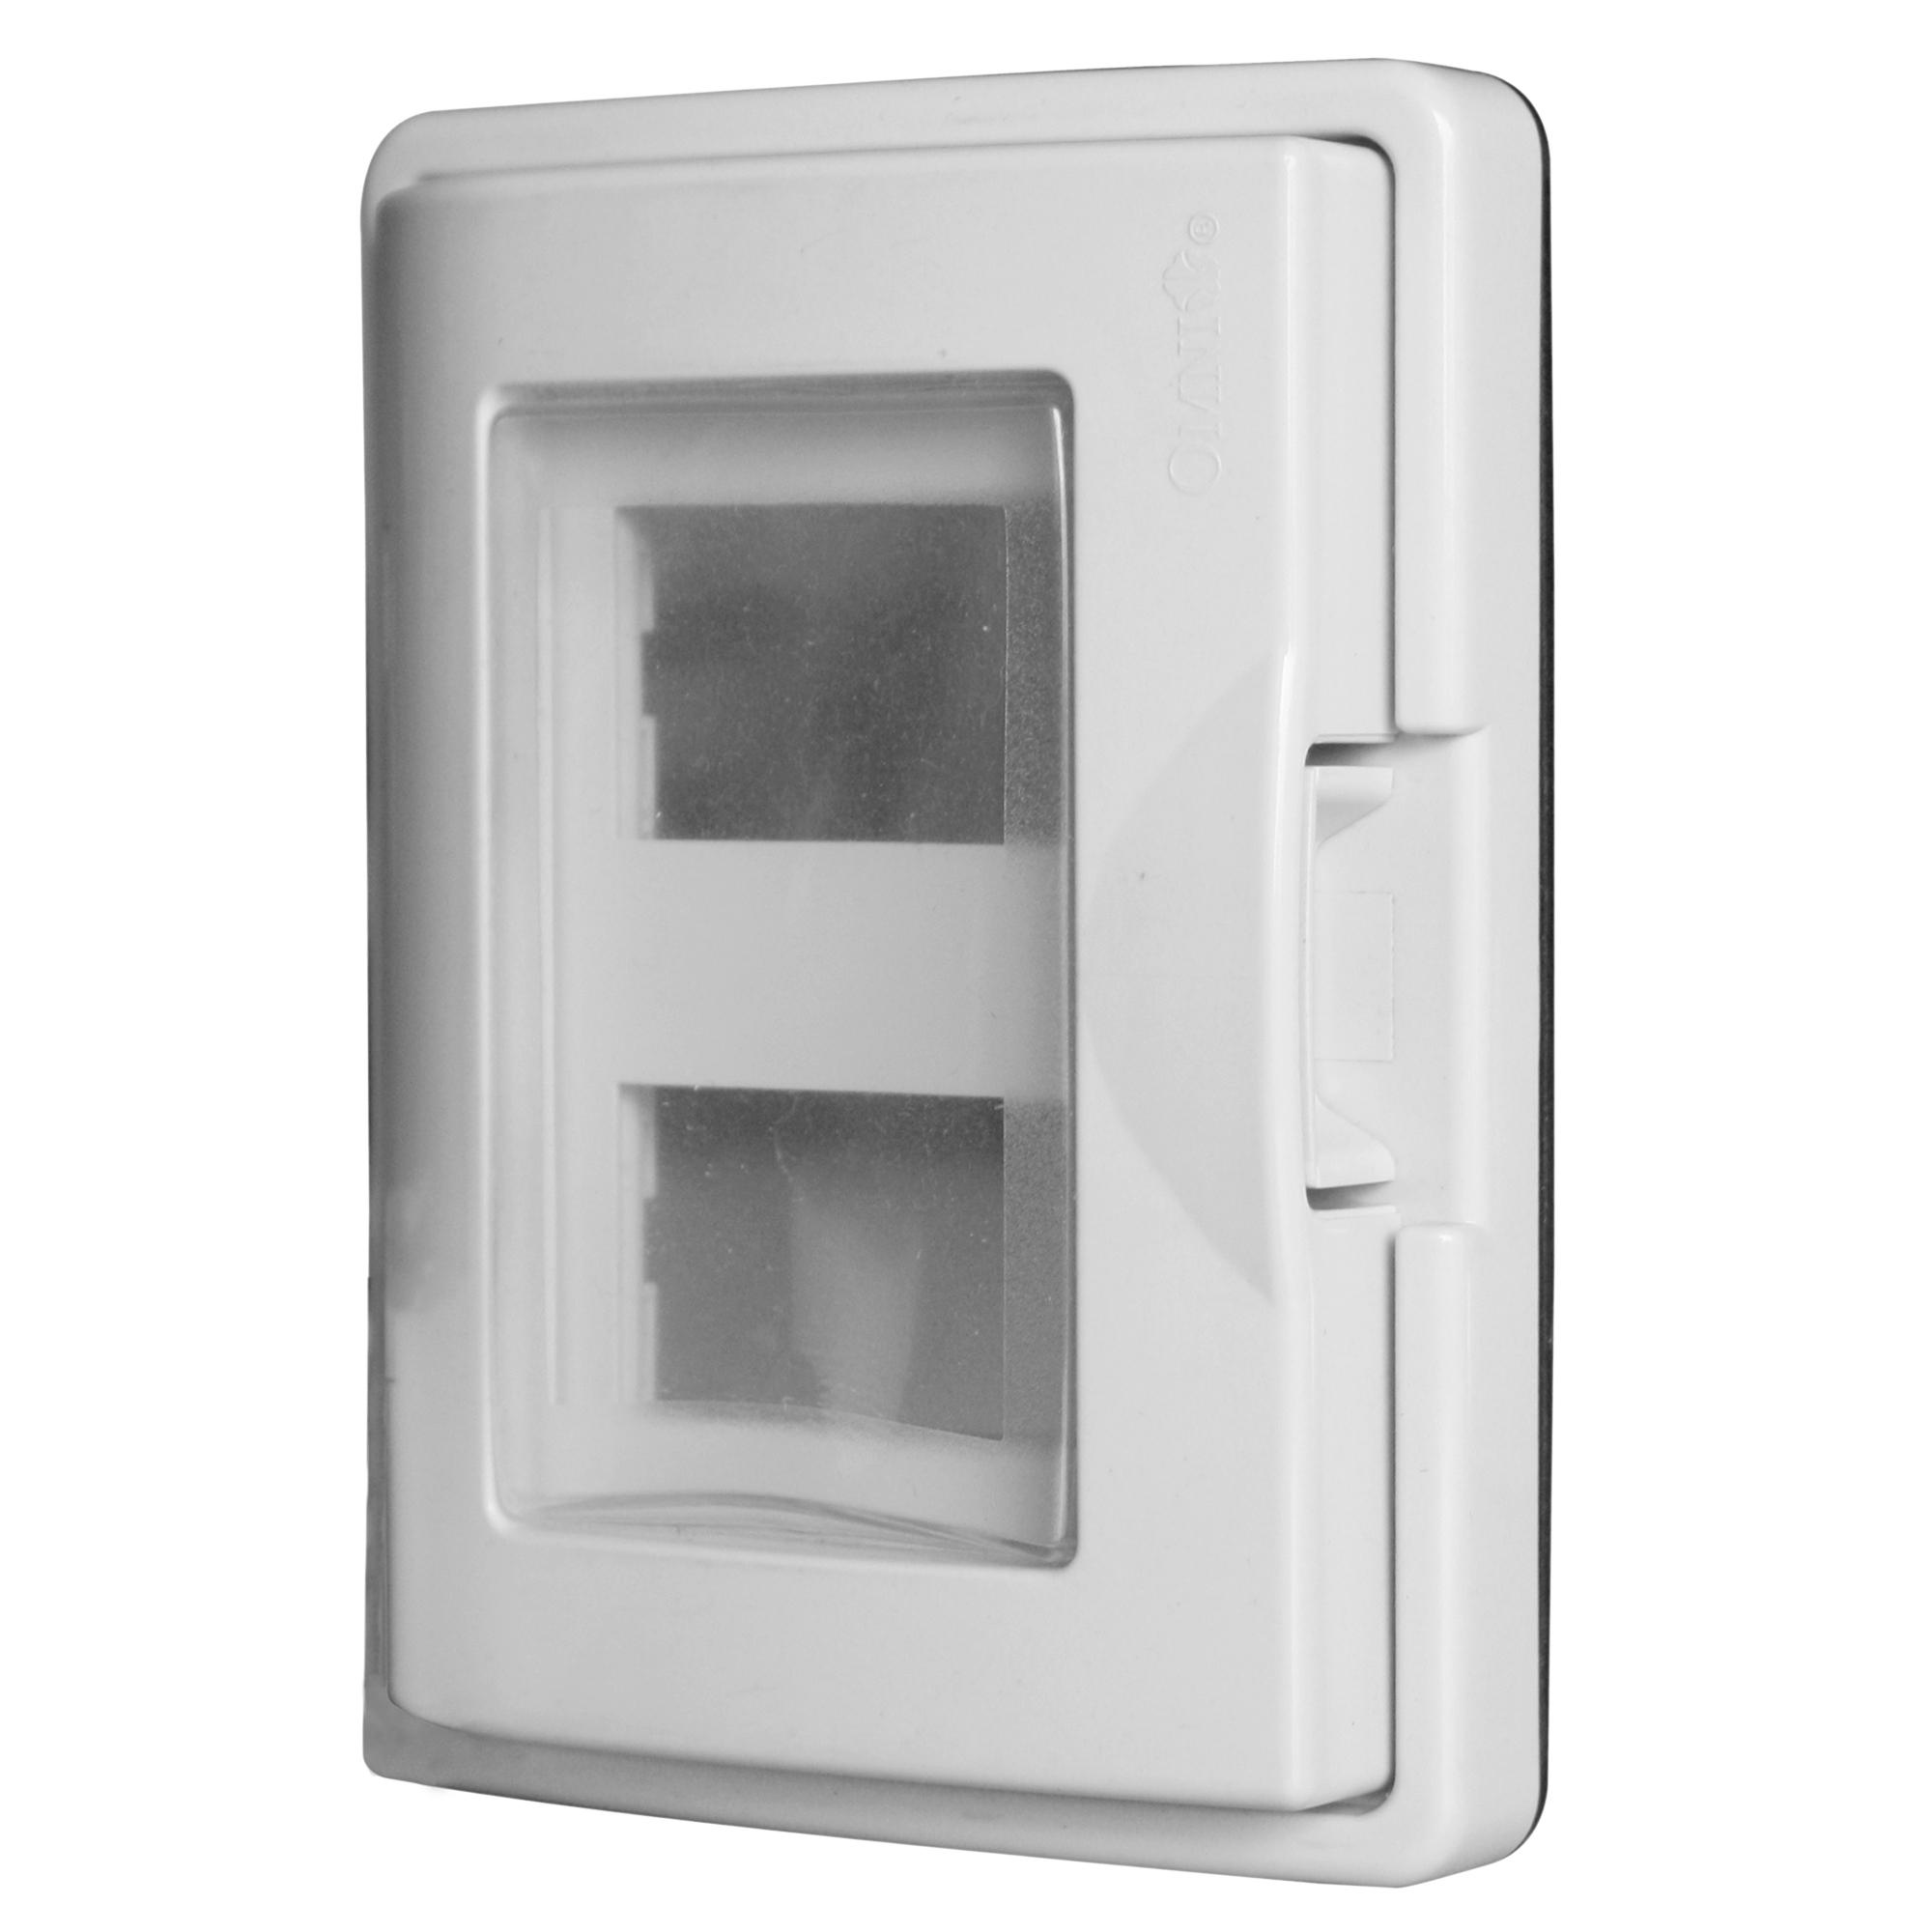 Omni Philippines Electrical Equipment For Sale Prices 2 Way Outdoor Switch Weatherproof Cover Wpp 603